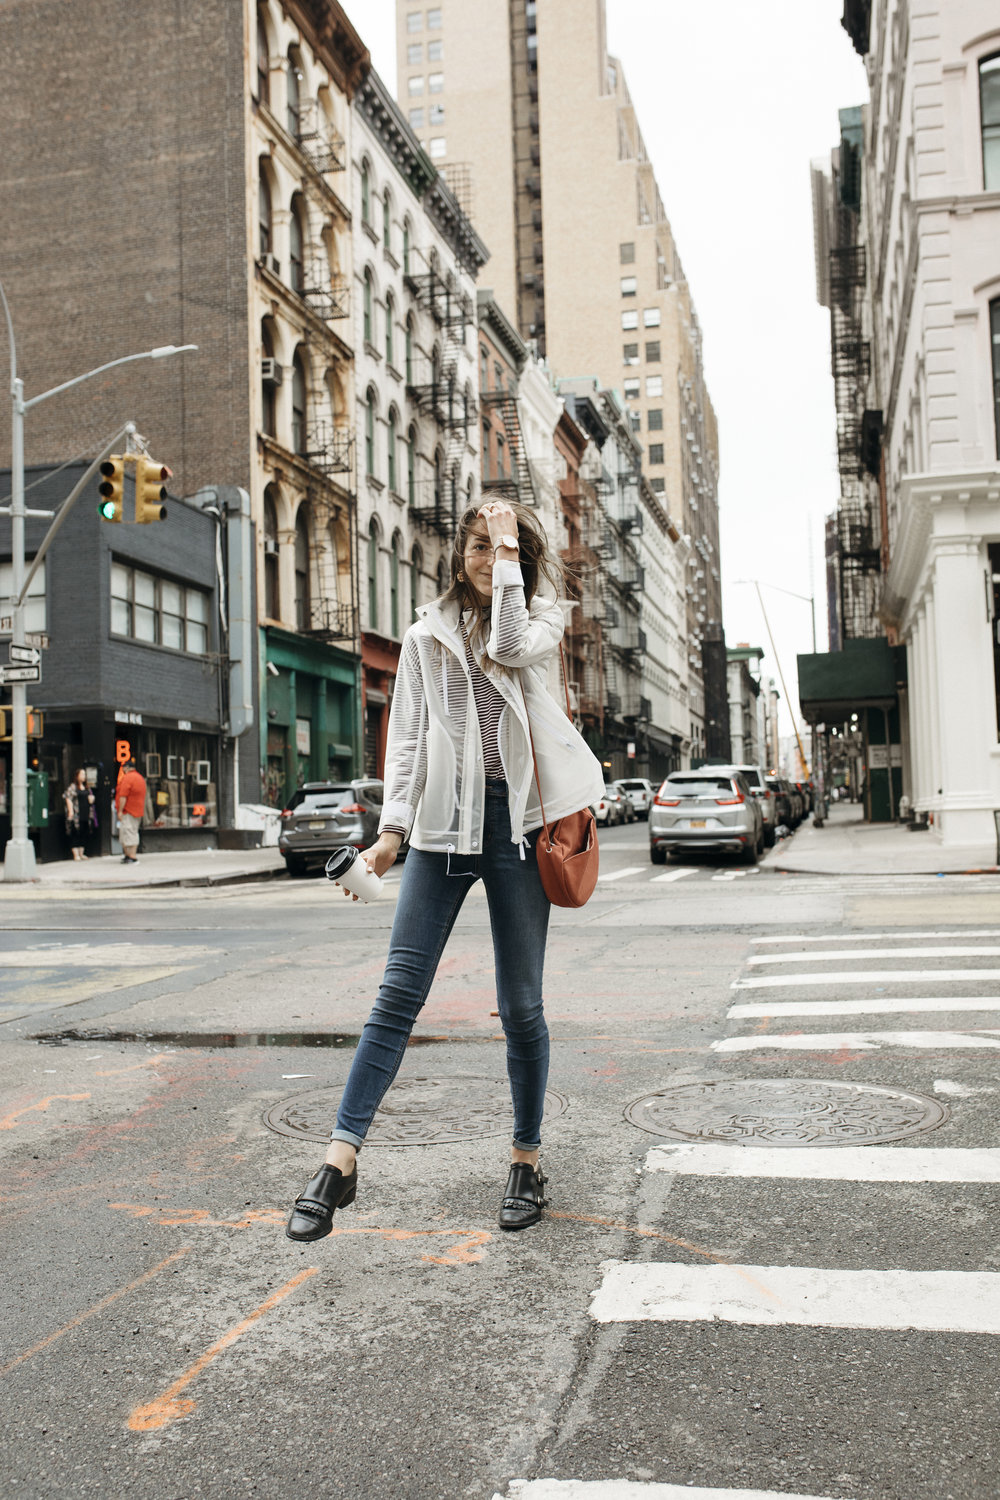 In a white jacket, coffee cup in hand, the blogger steps out onto the streets of NYC and crosses a sidewalk in a quiet area